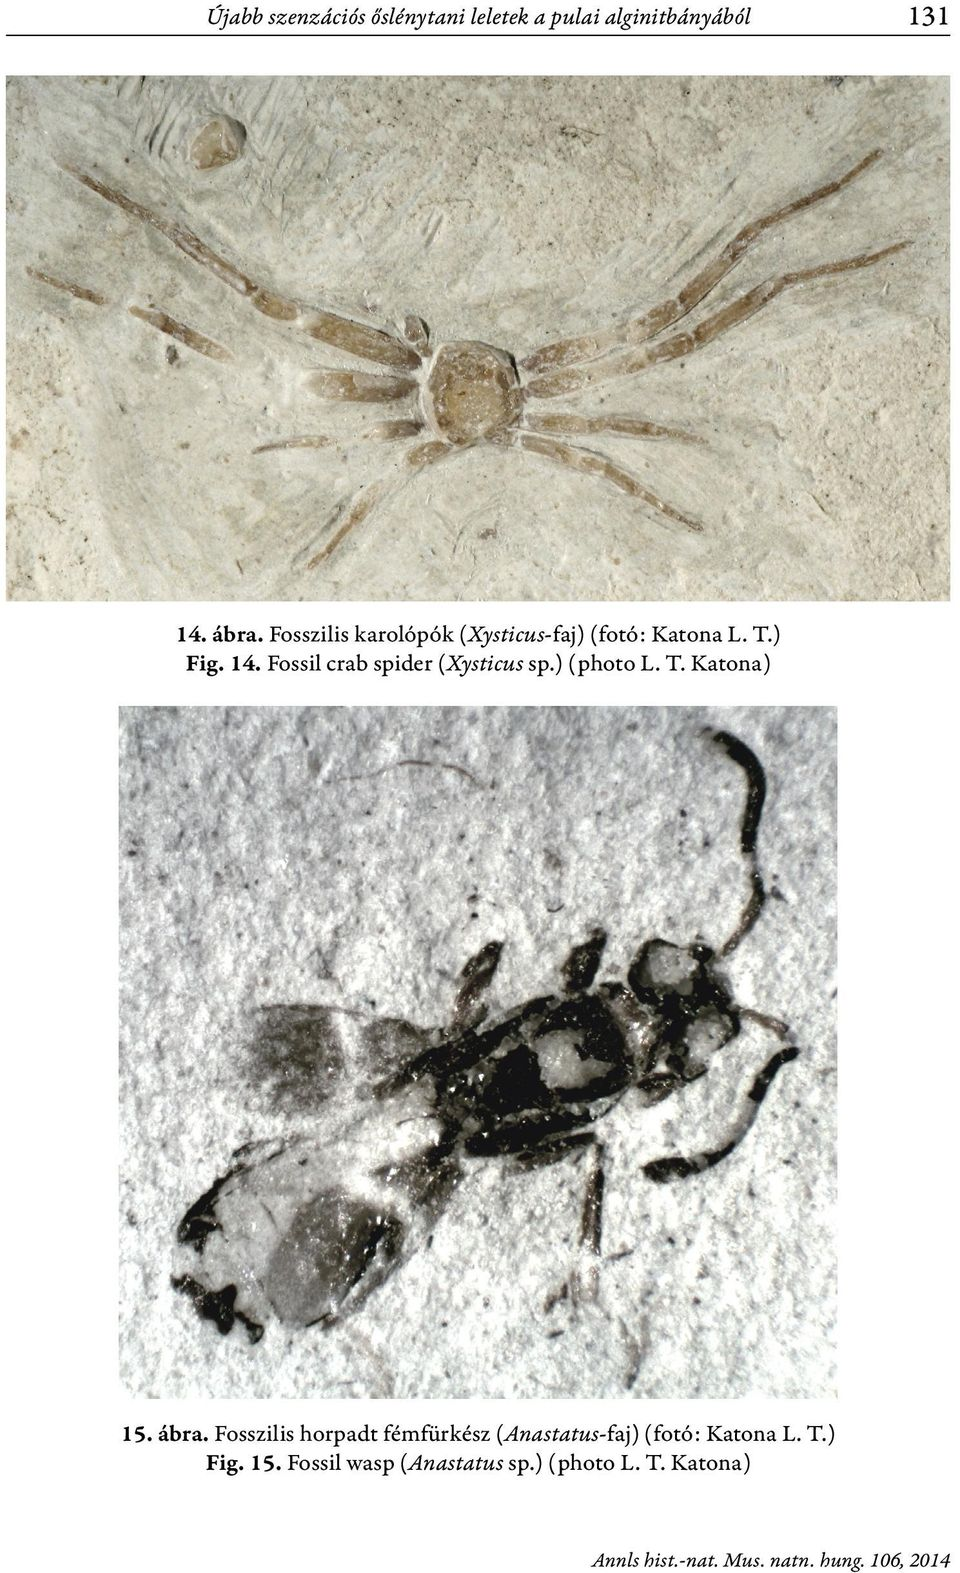 Fossil crab spider (Xysticus sp.) (photo L. T. Katona) 15. ábra.